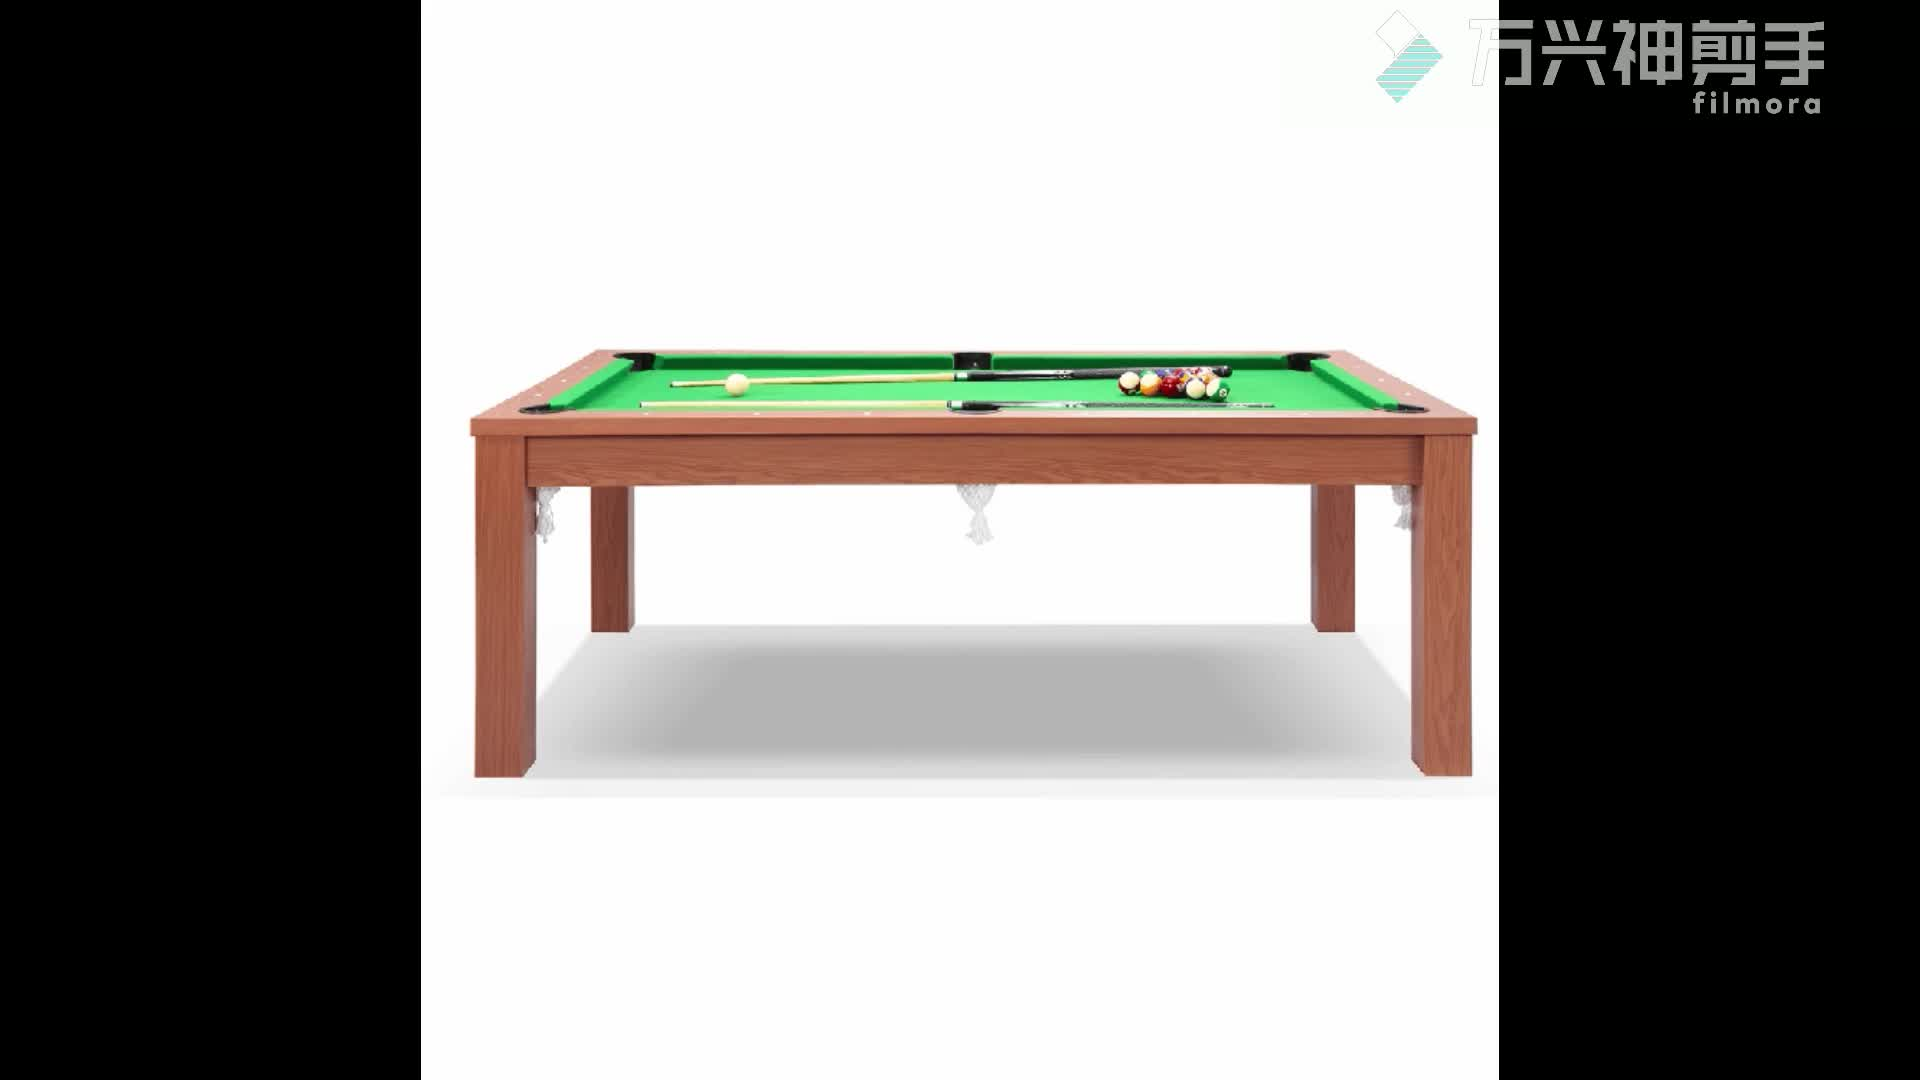 SZX 2in 1  multifunction pool table with dining table top for sales china